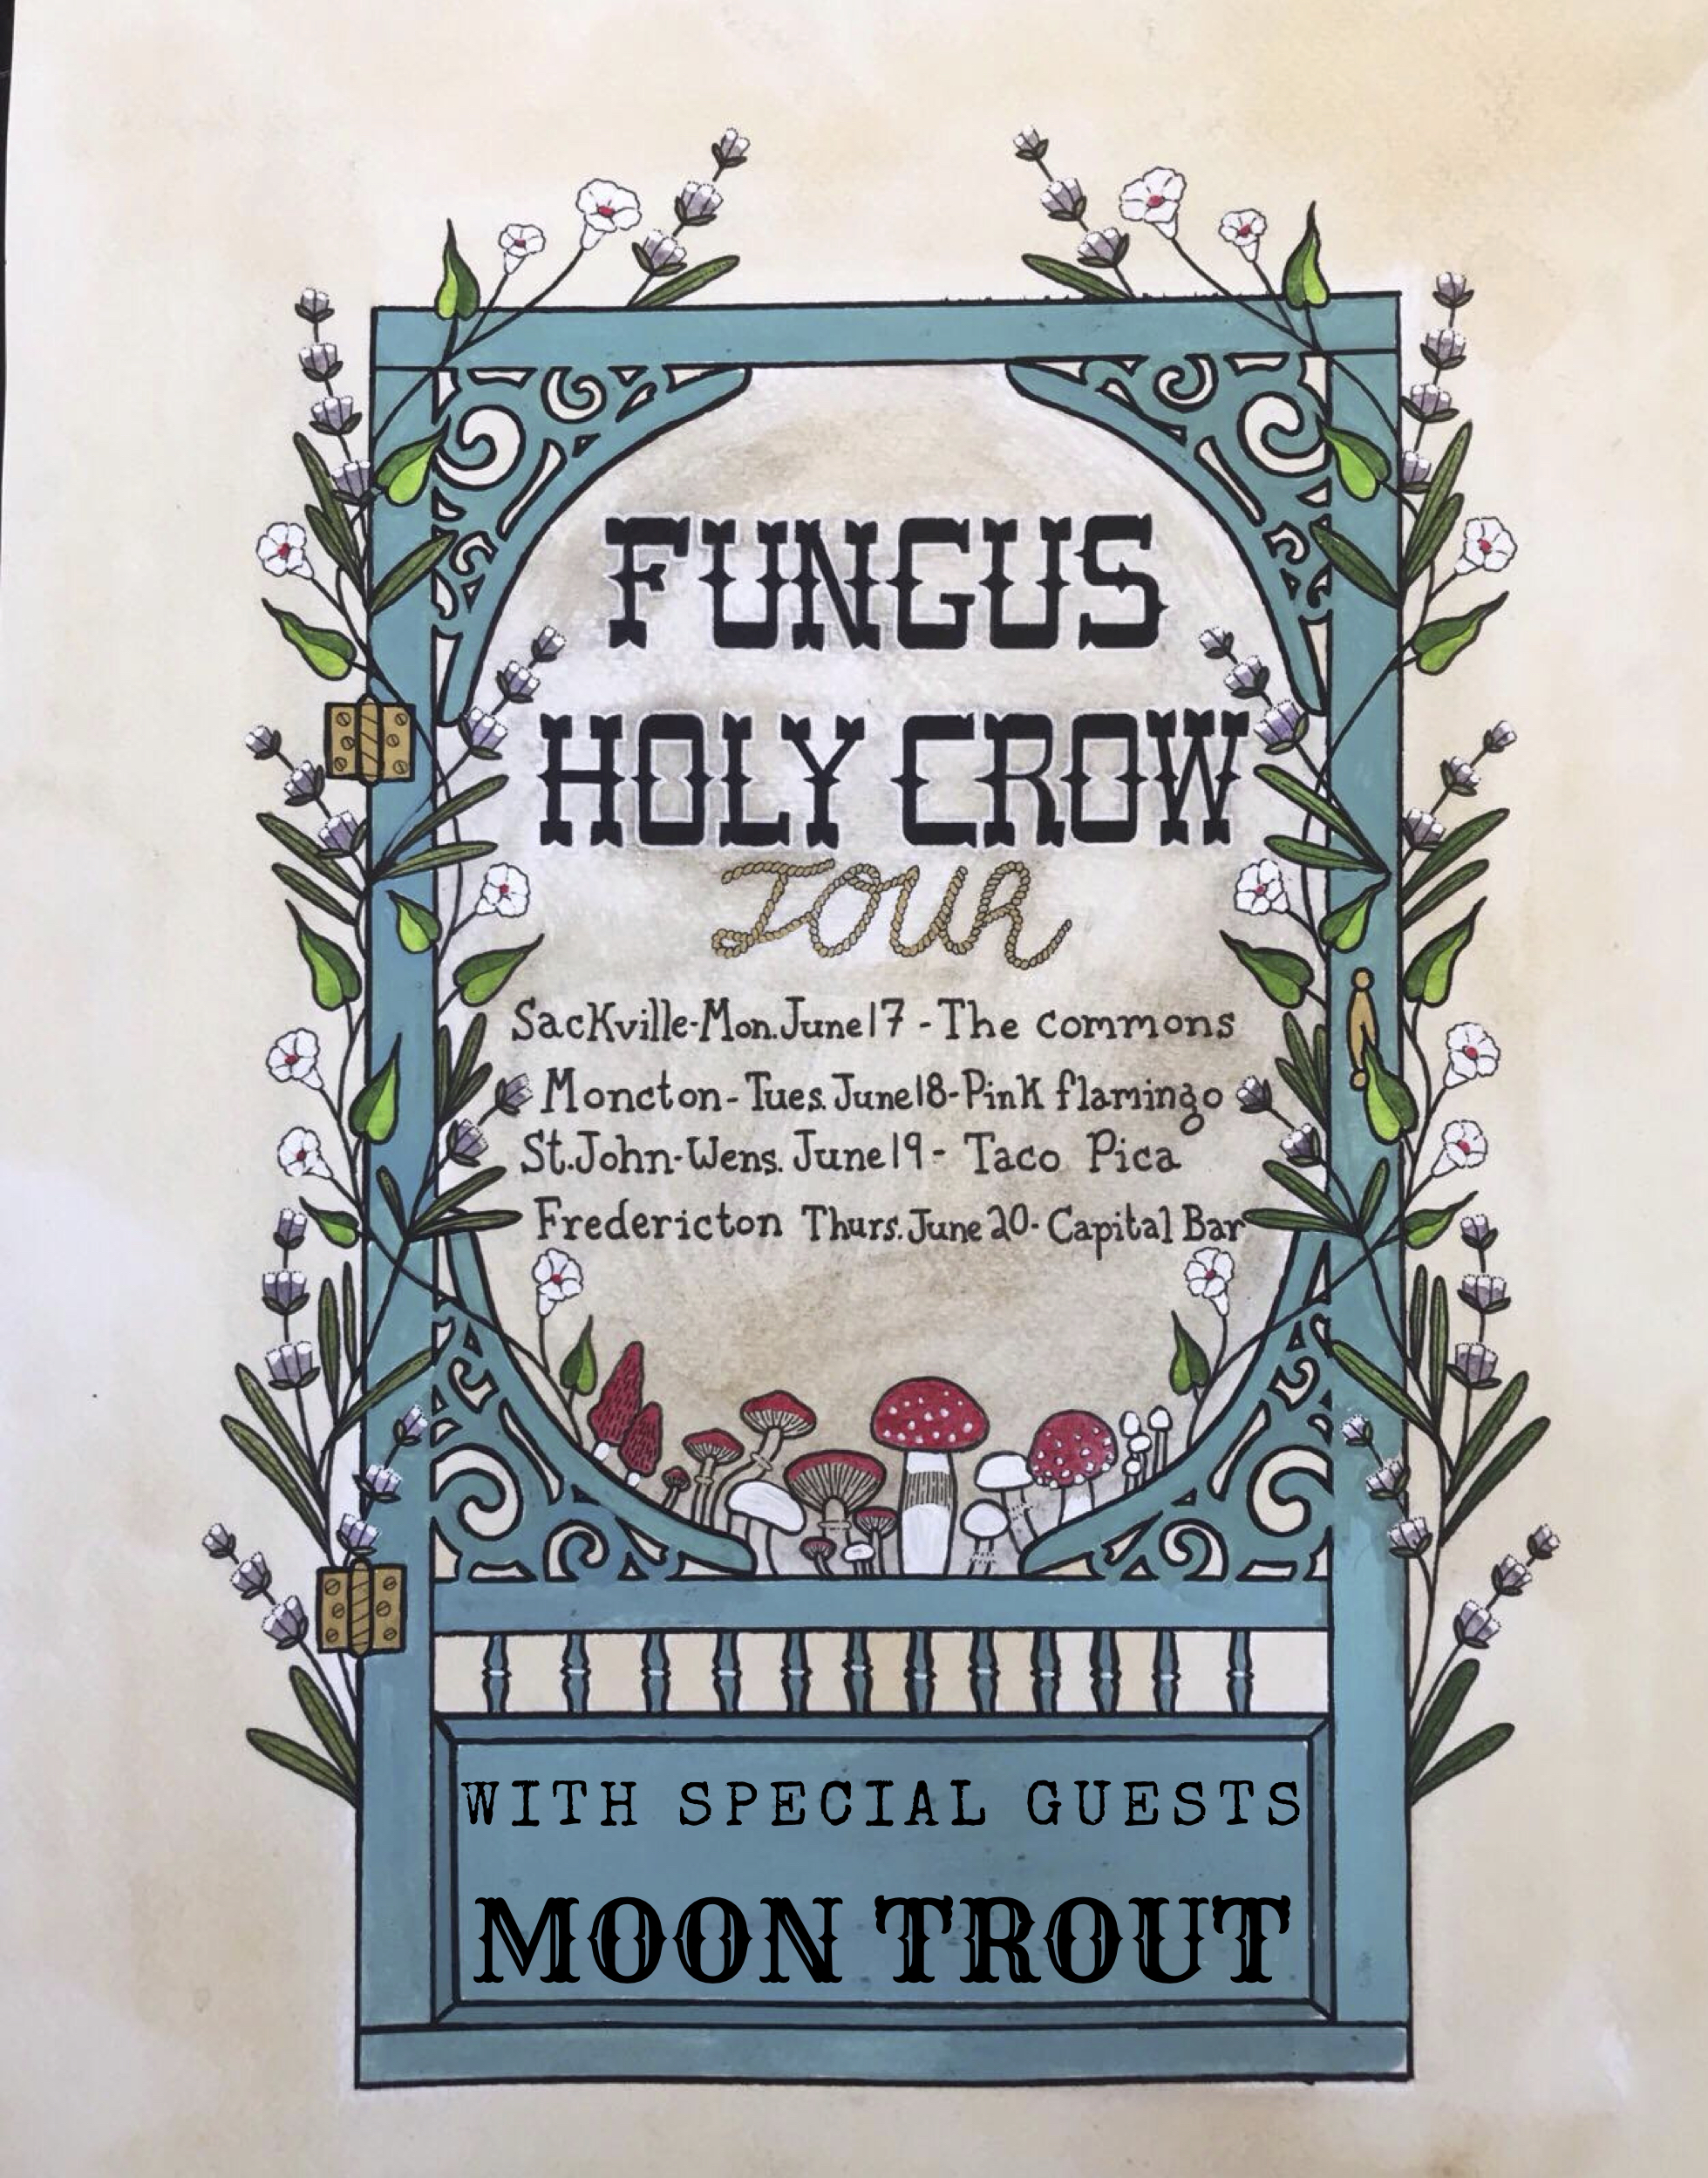 The Fungus and Holy Crow Screen Door Tour